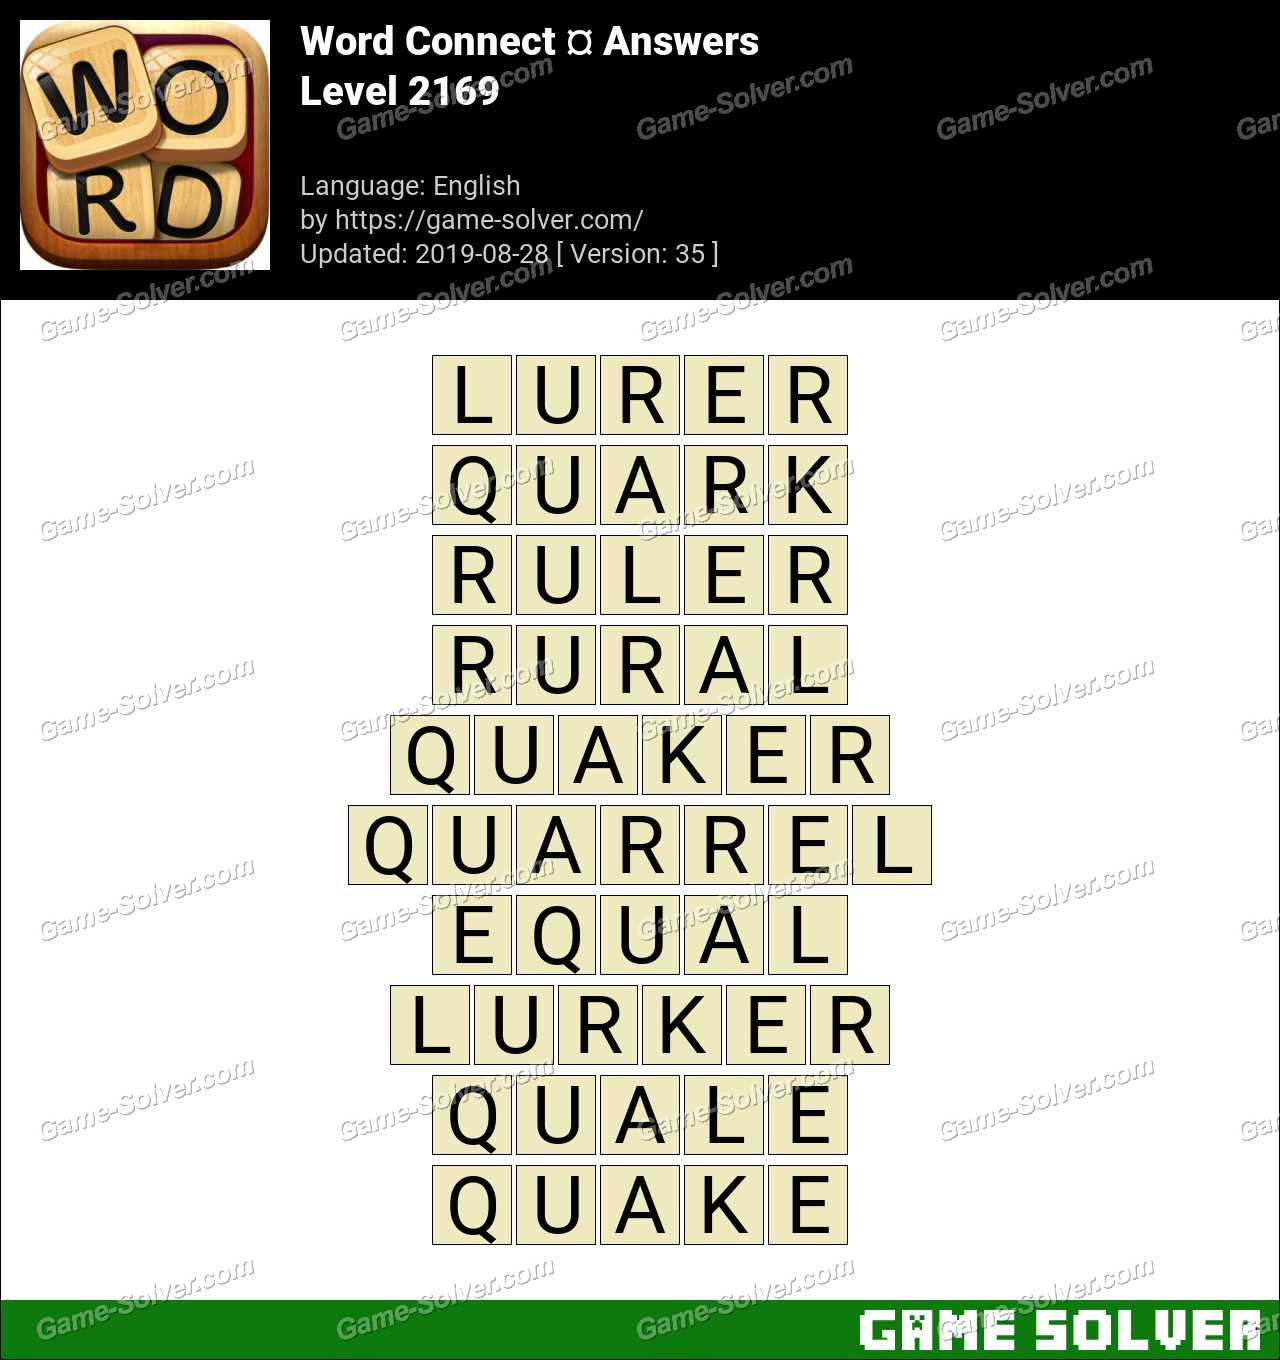 Word Connect Level 2169 Answers